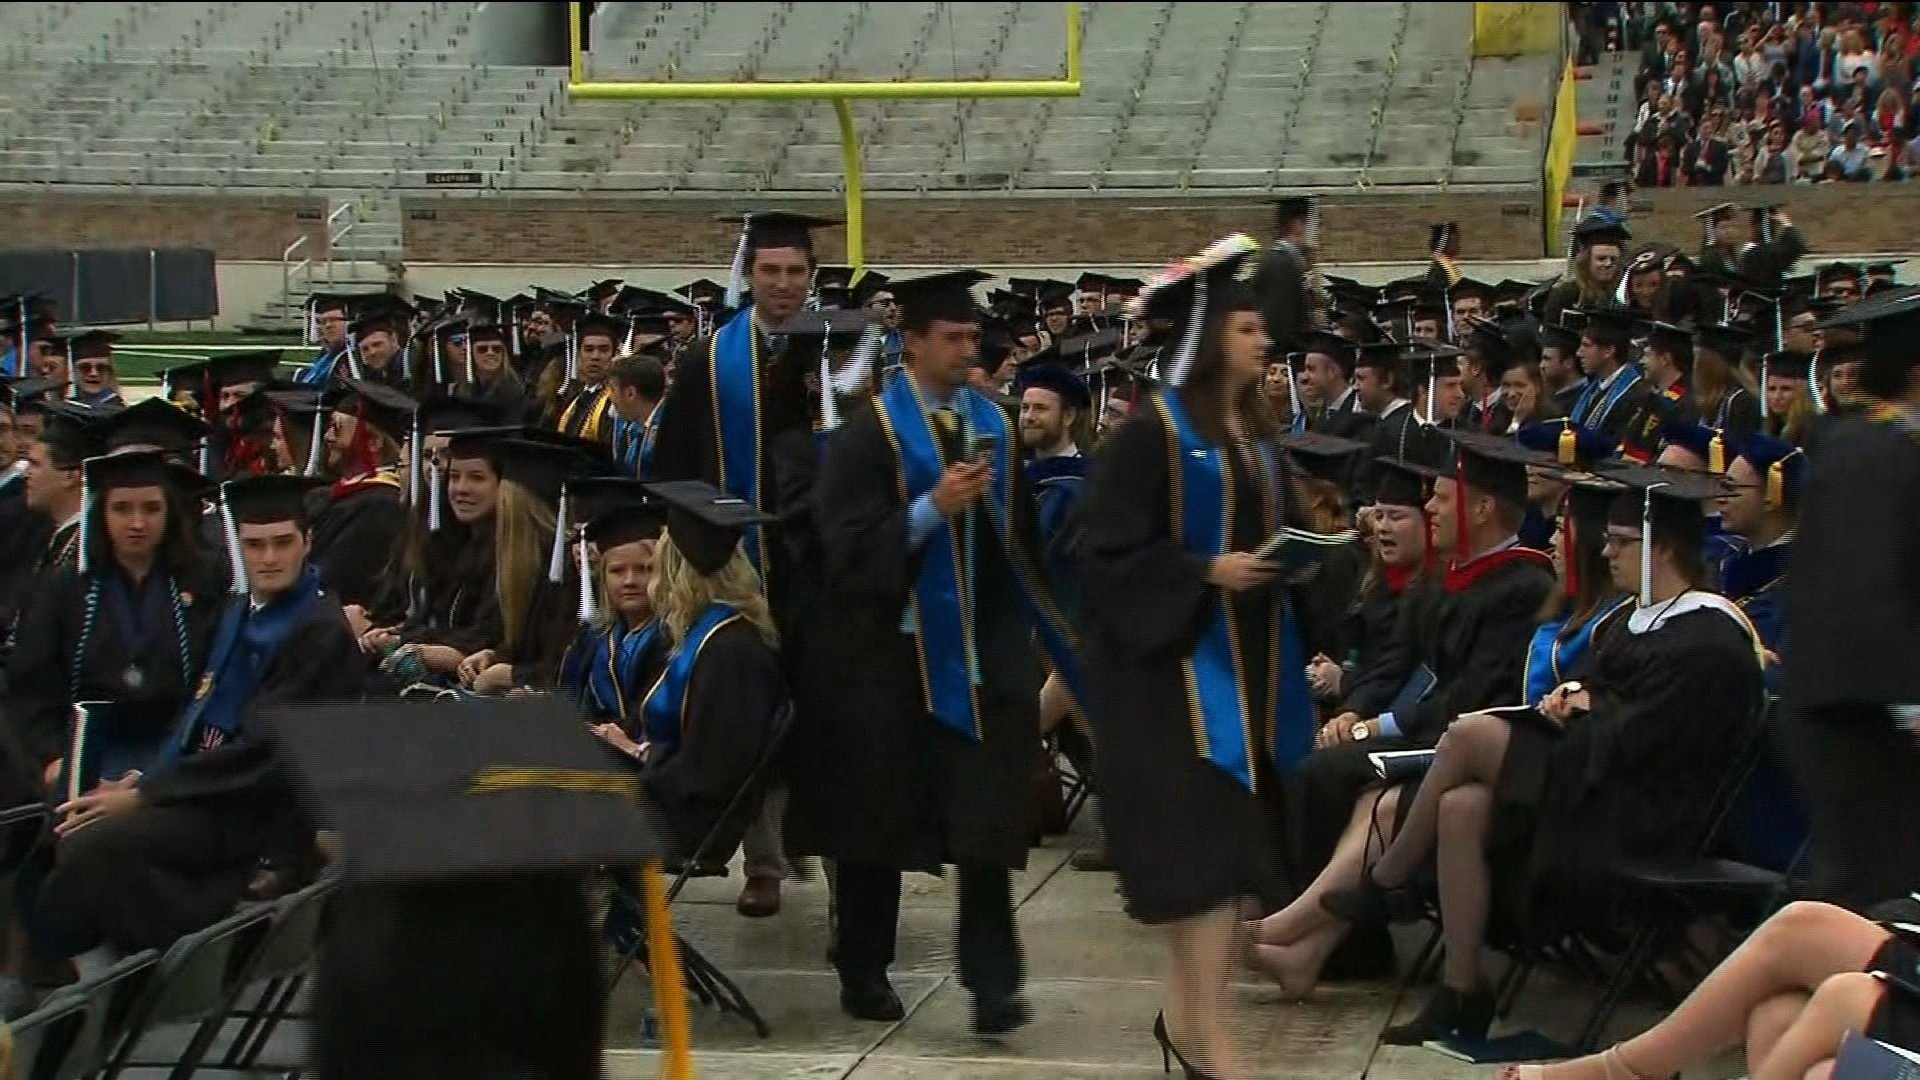 Notre Dame Students Walk Out During Vice President Mike Pence's Commencement Speech